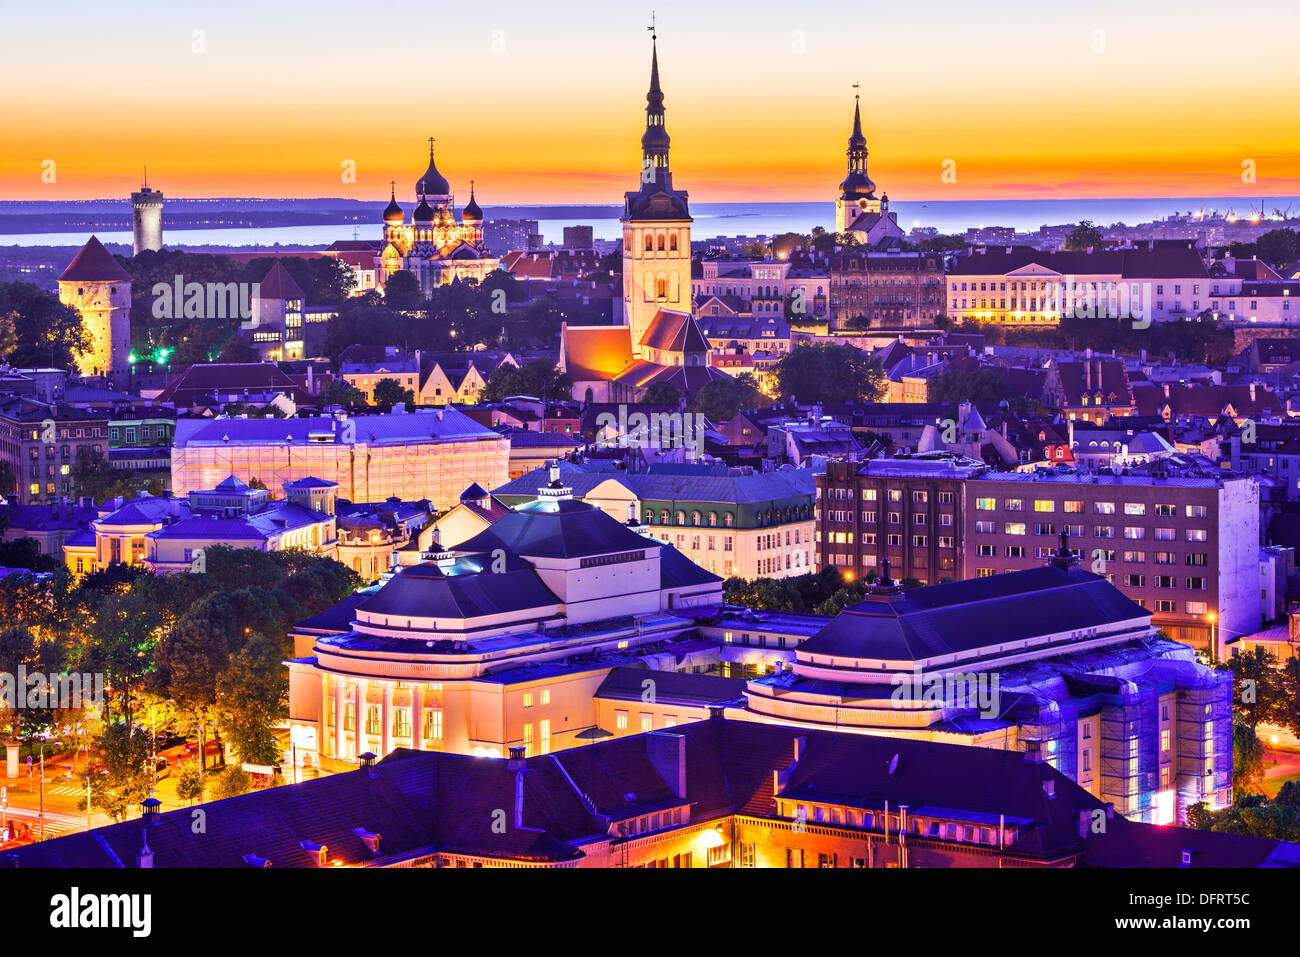 Skyline of Tallinn, Estonia at sunset. - Stock Image